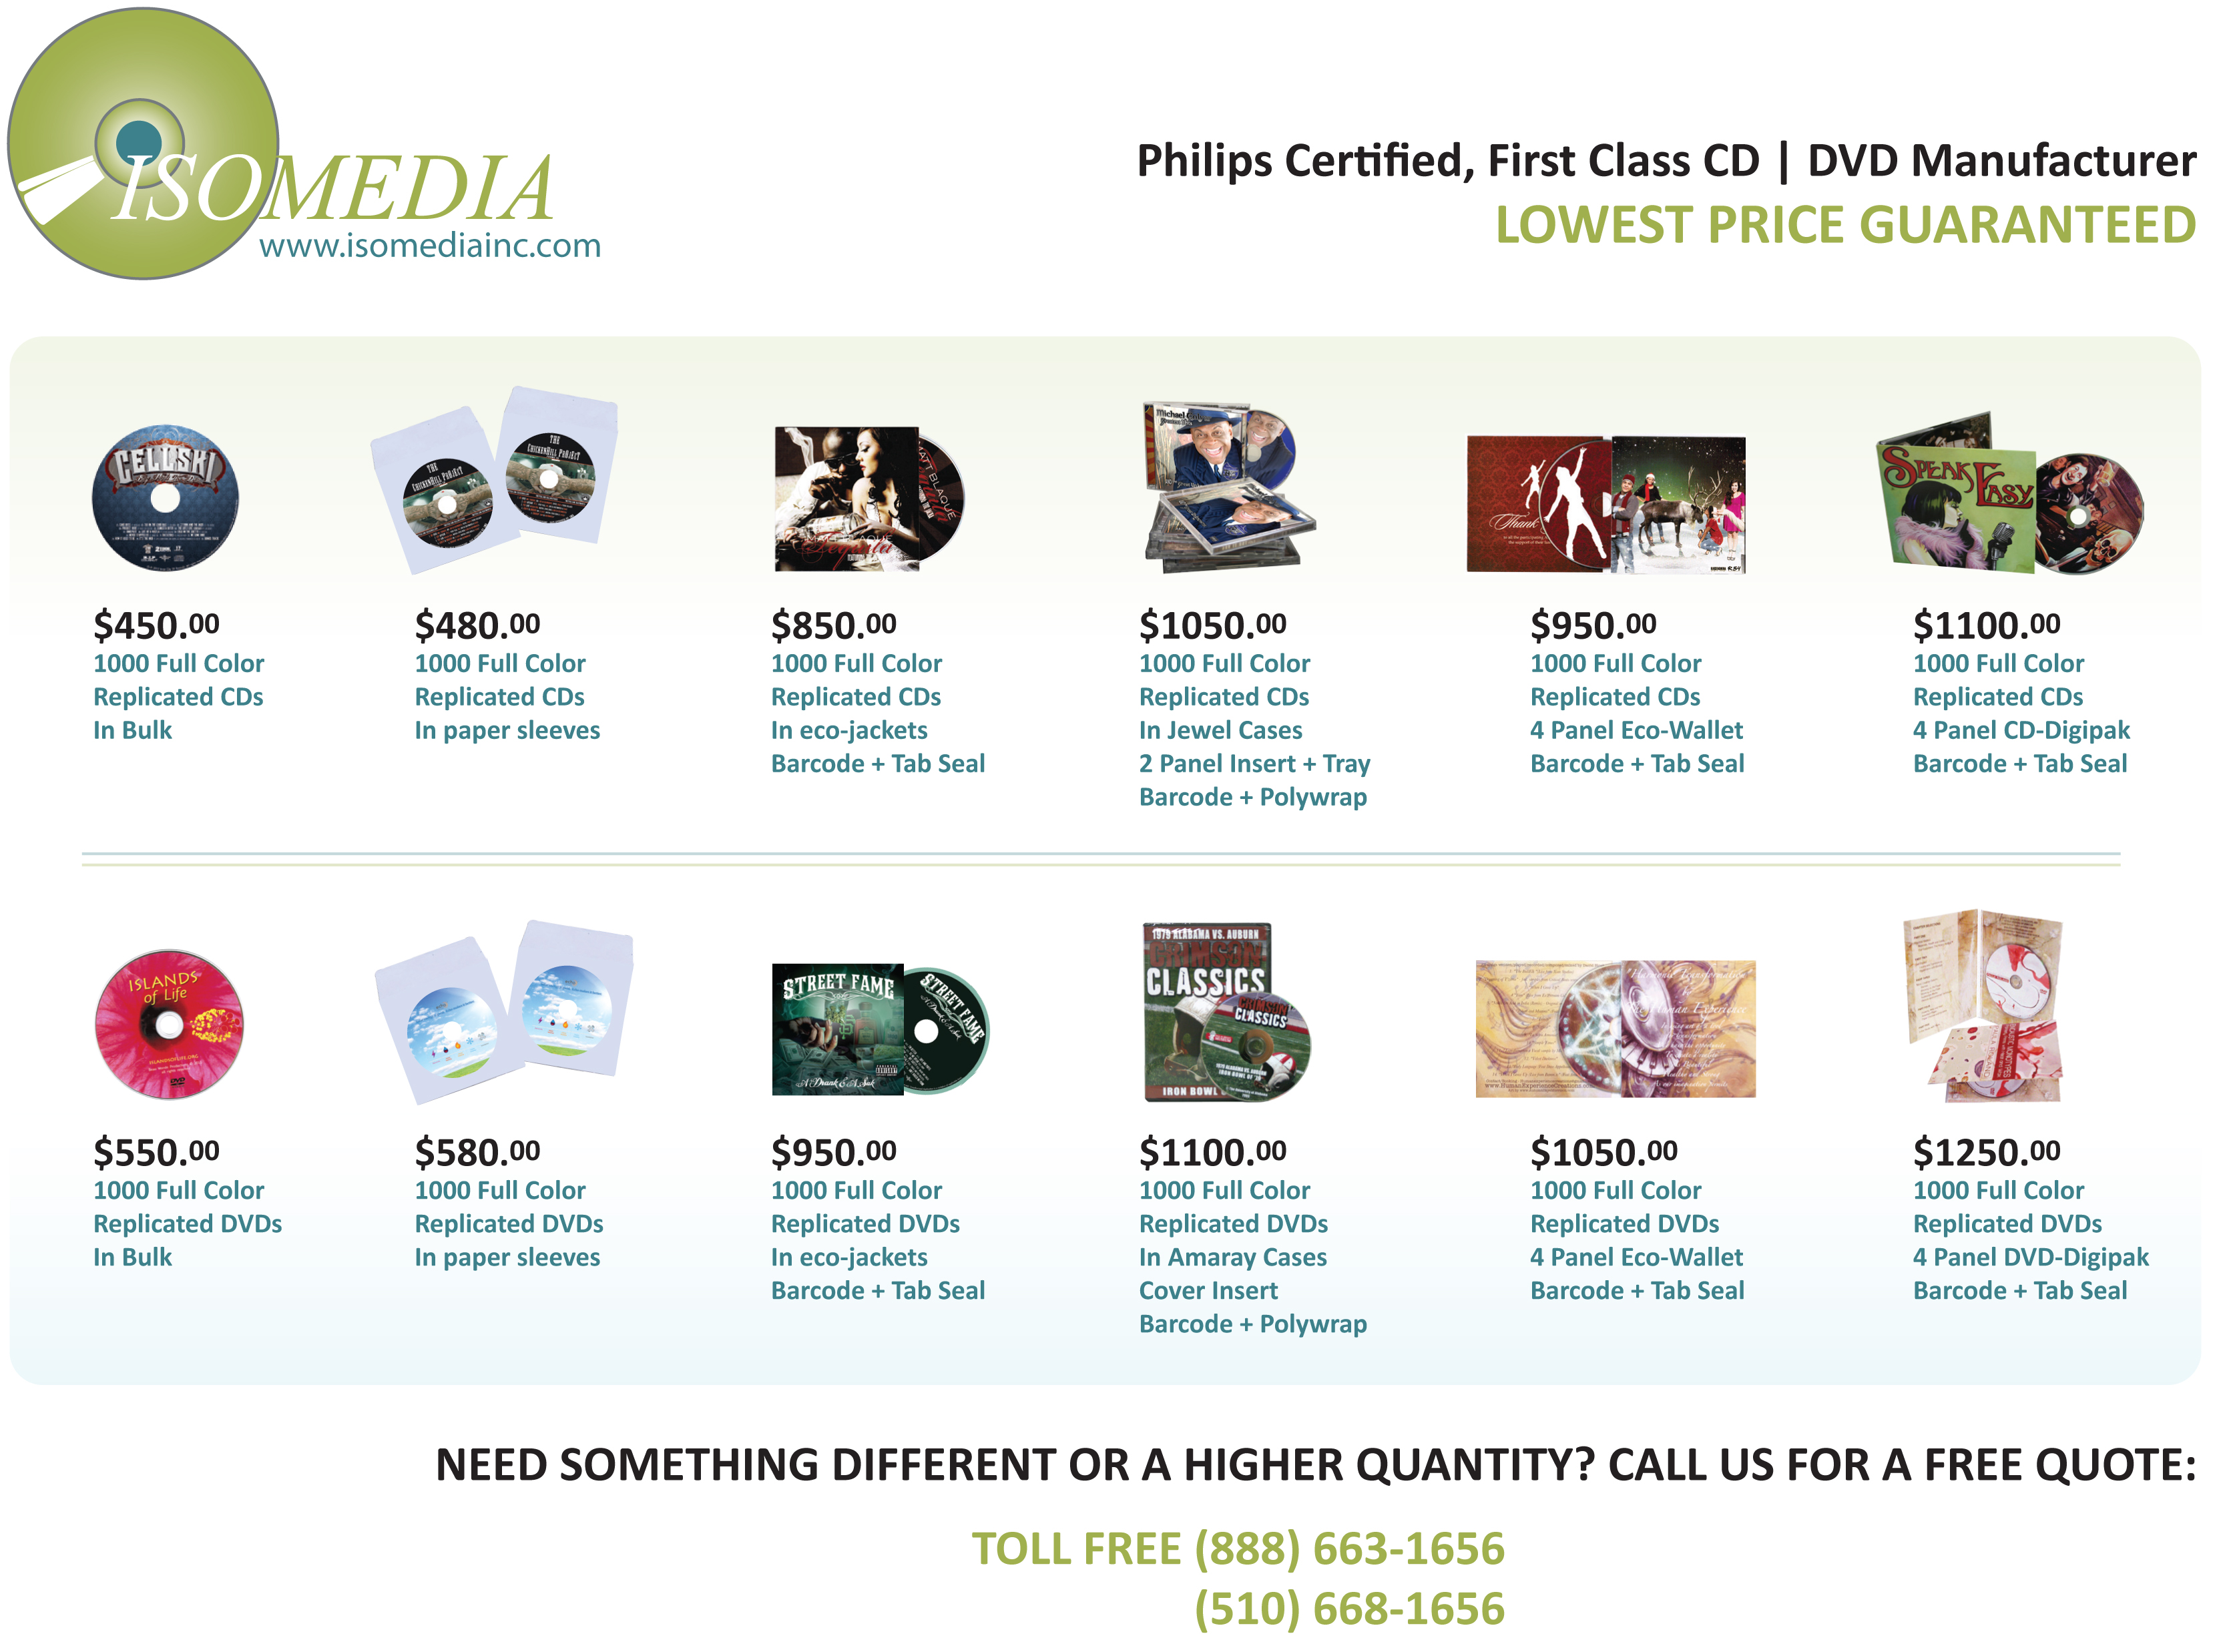 Isomedia, CD Replication, CD Duplication, DVD Replication, DVD Duplication.